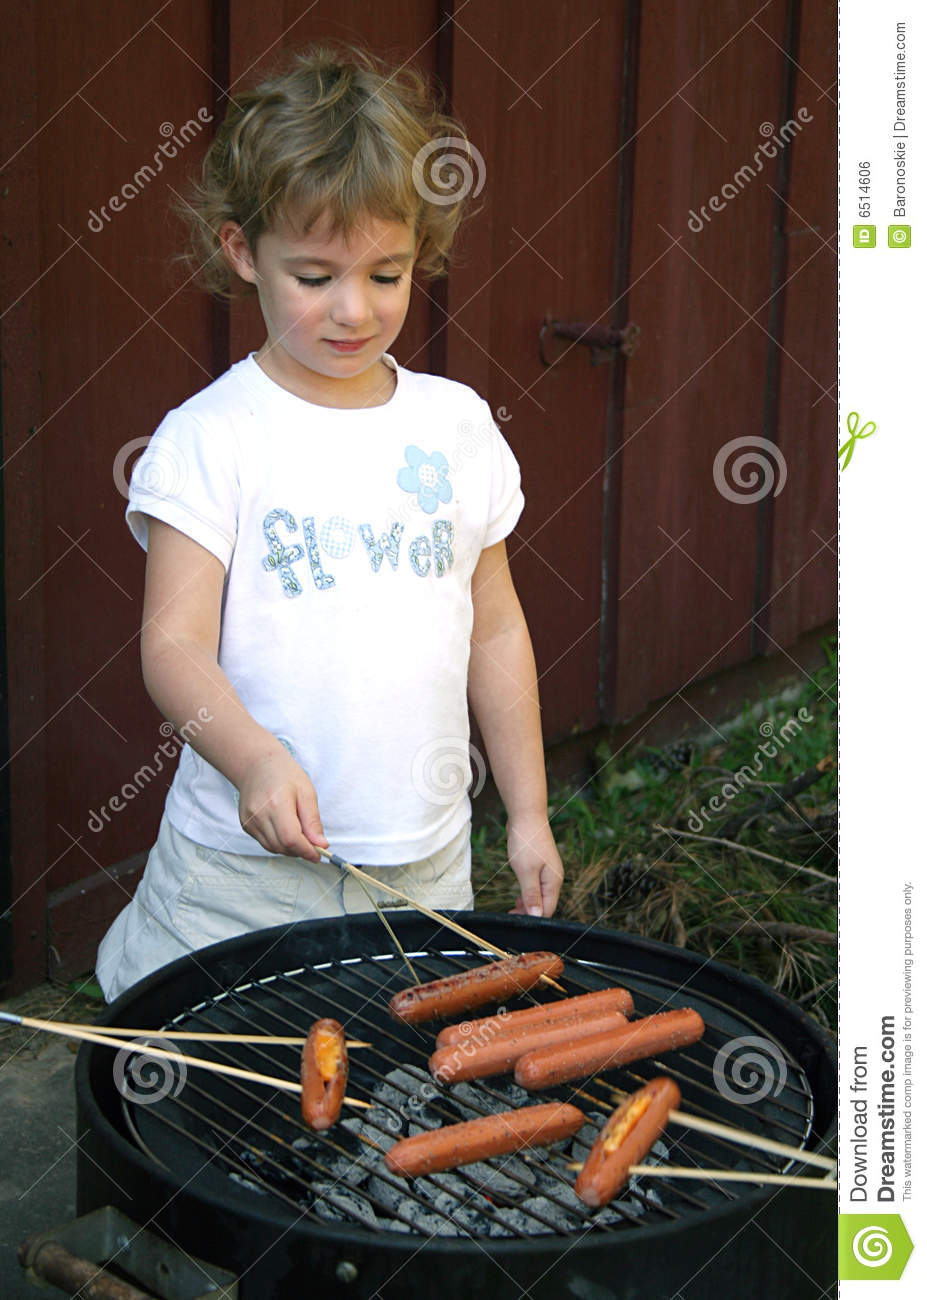 Cooking Hot Dogs Royalty Free Stock Image - Image: 6514606